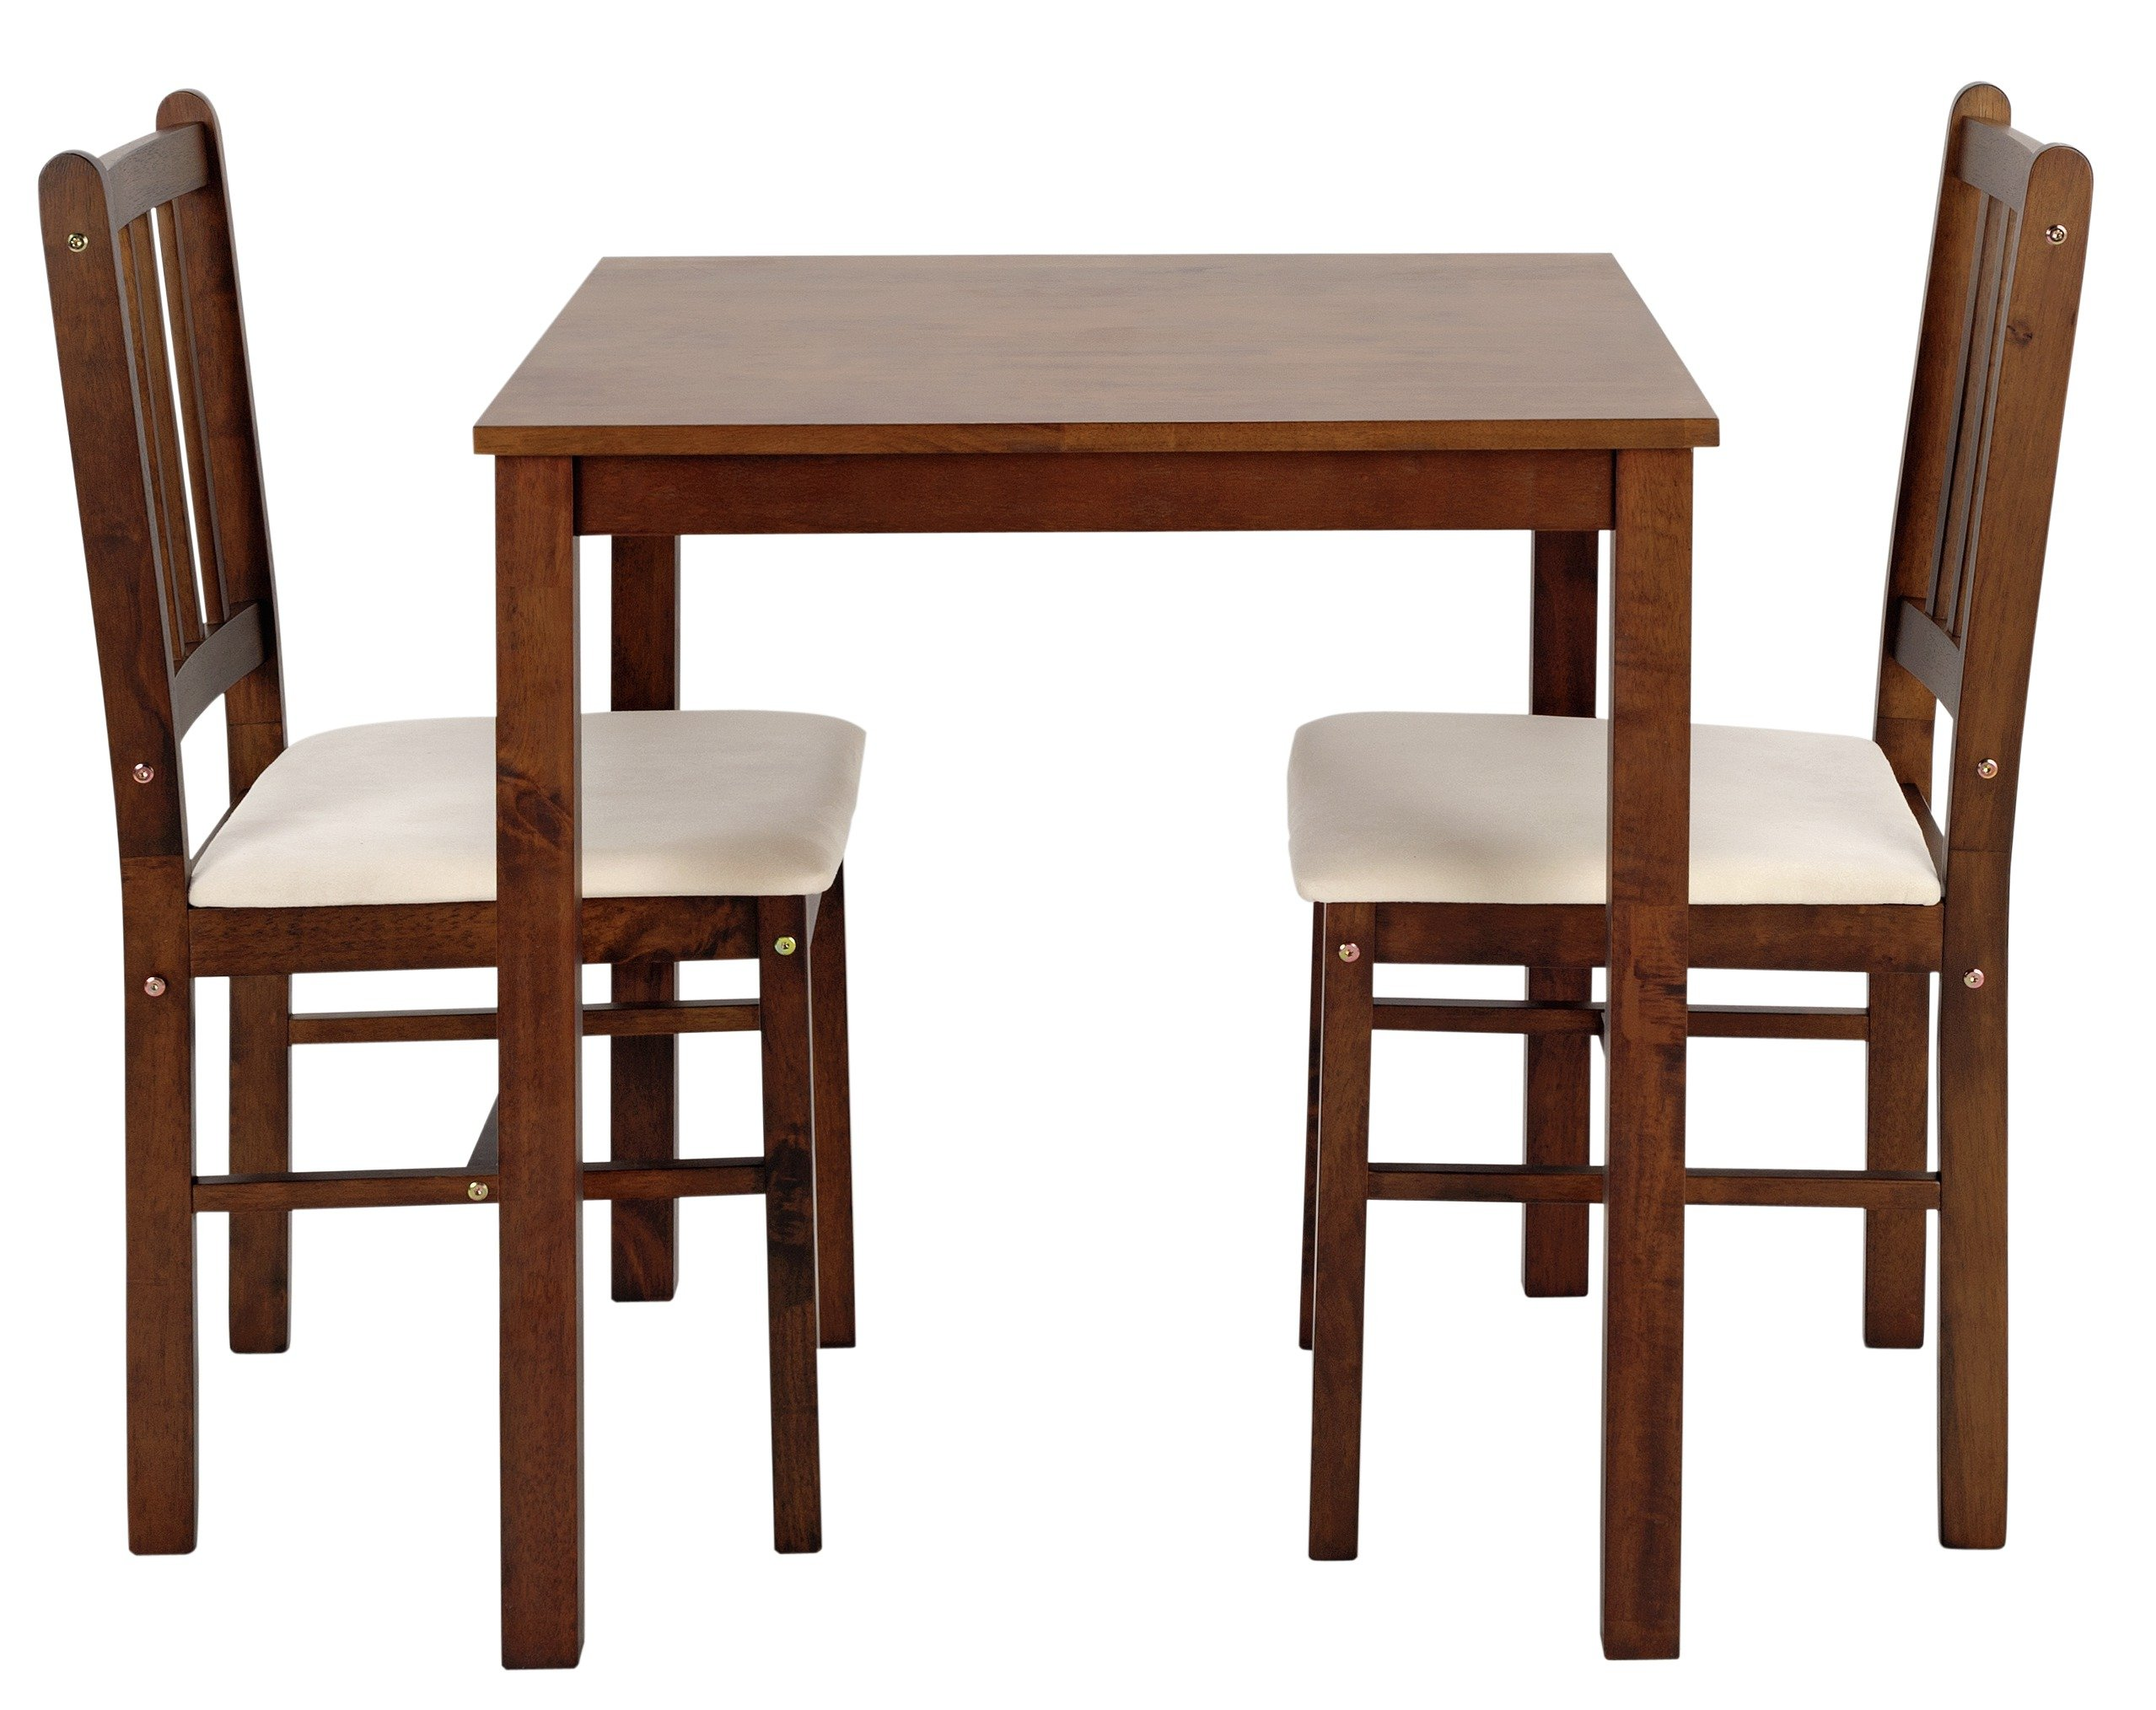 table 2 chairs. click to zoom table 2 chairs